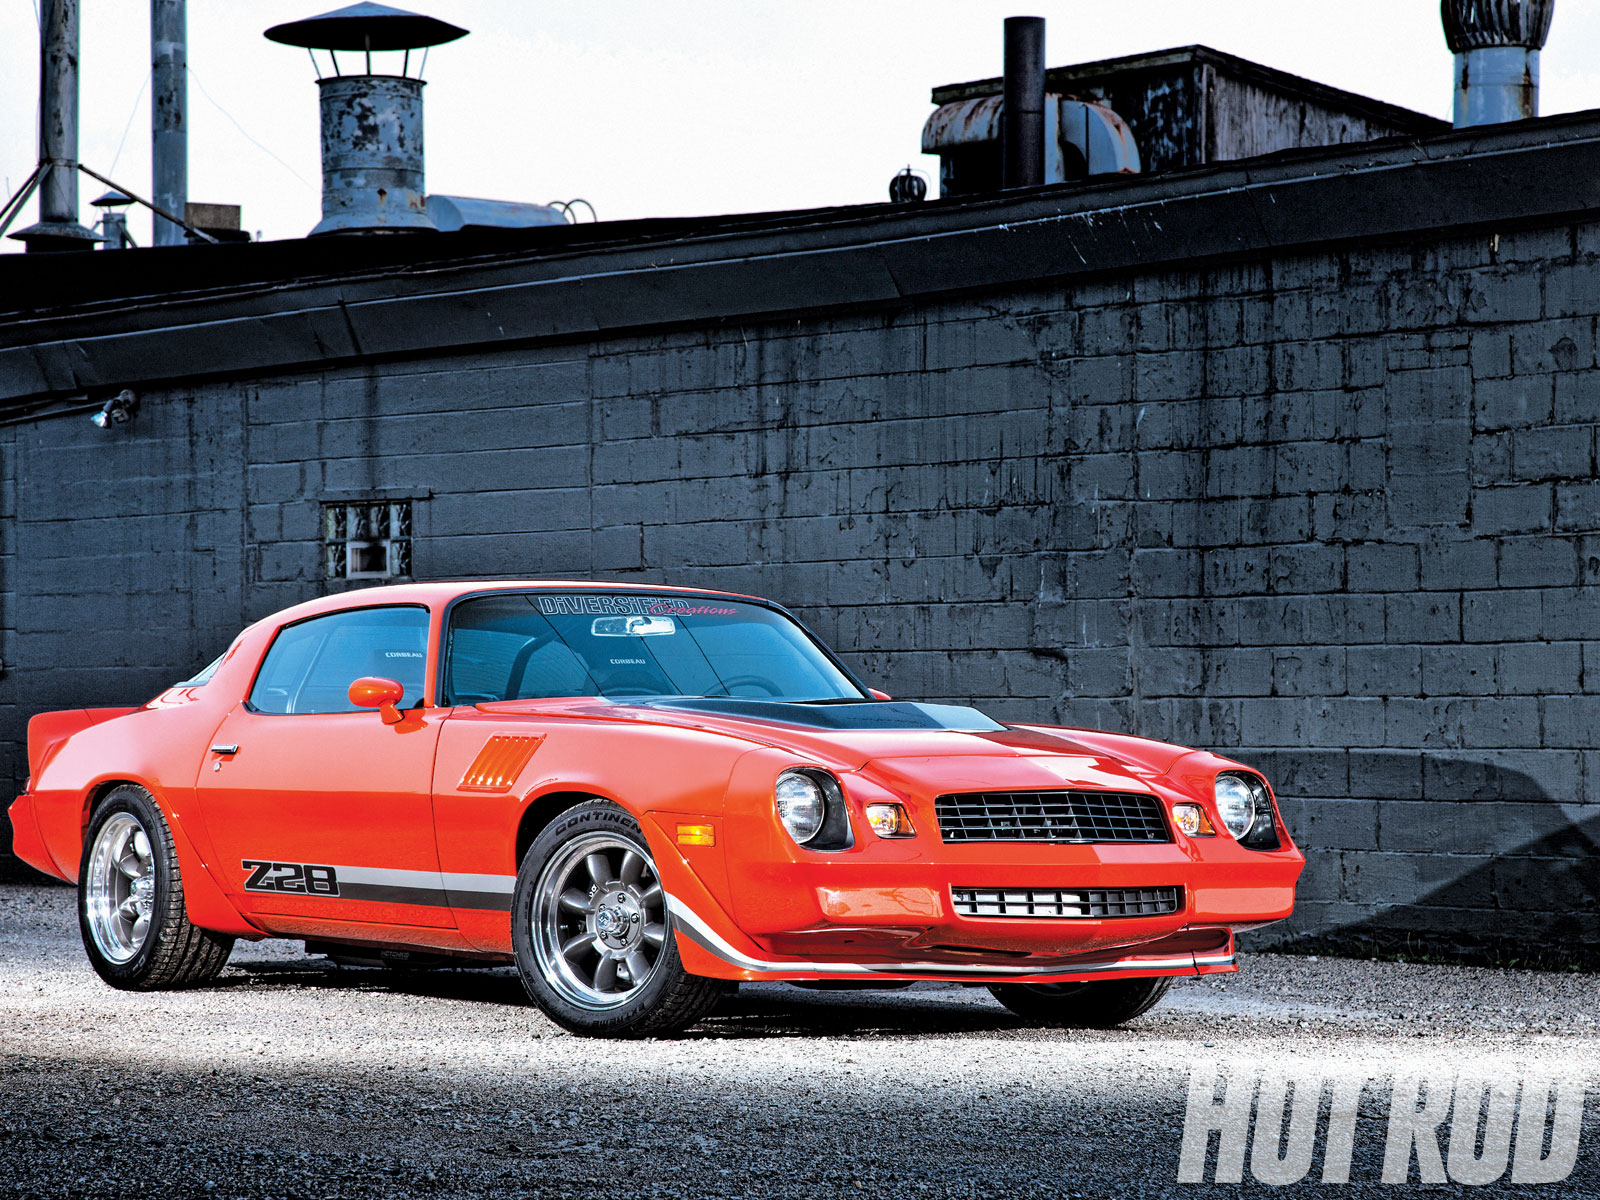 Cl Mustang >> 3DTuning of Chevrolet Camaro Z28 Coupe 1979 3DTuning.com ...